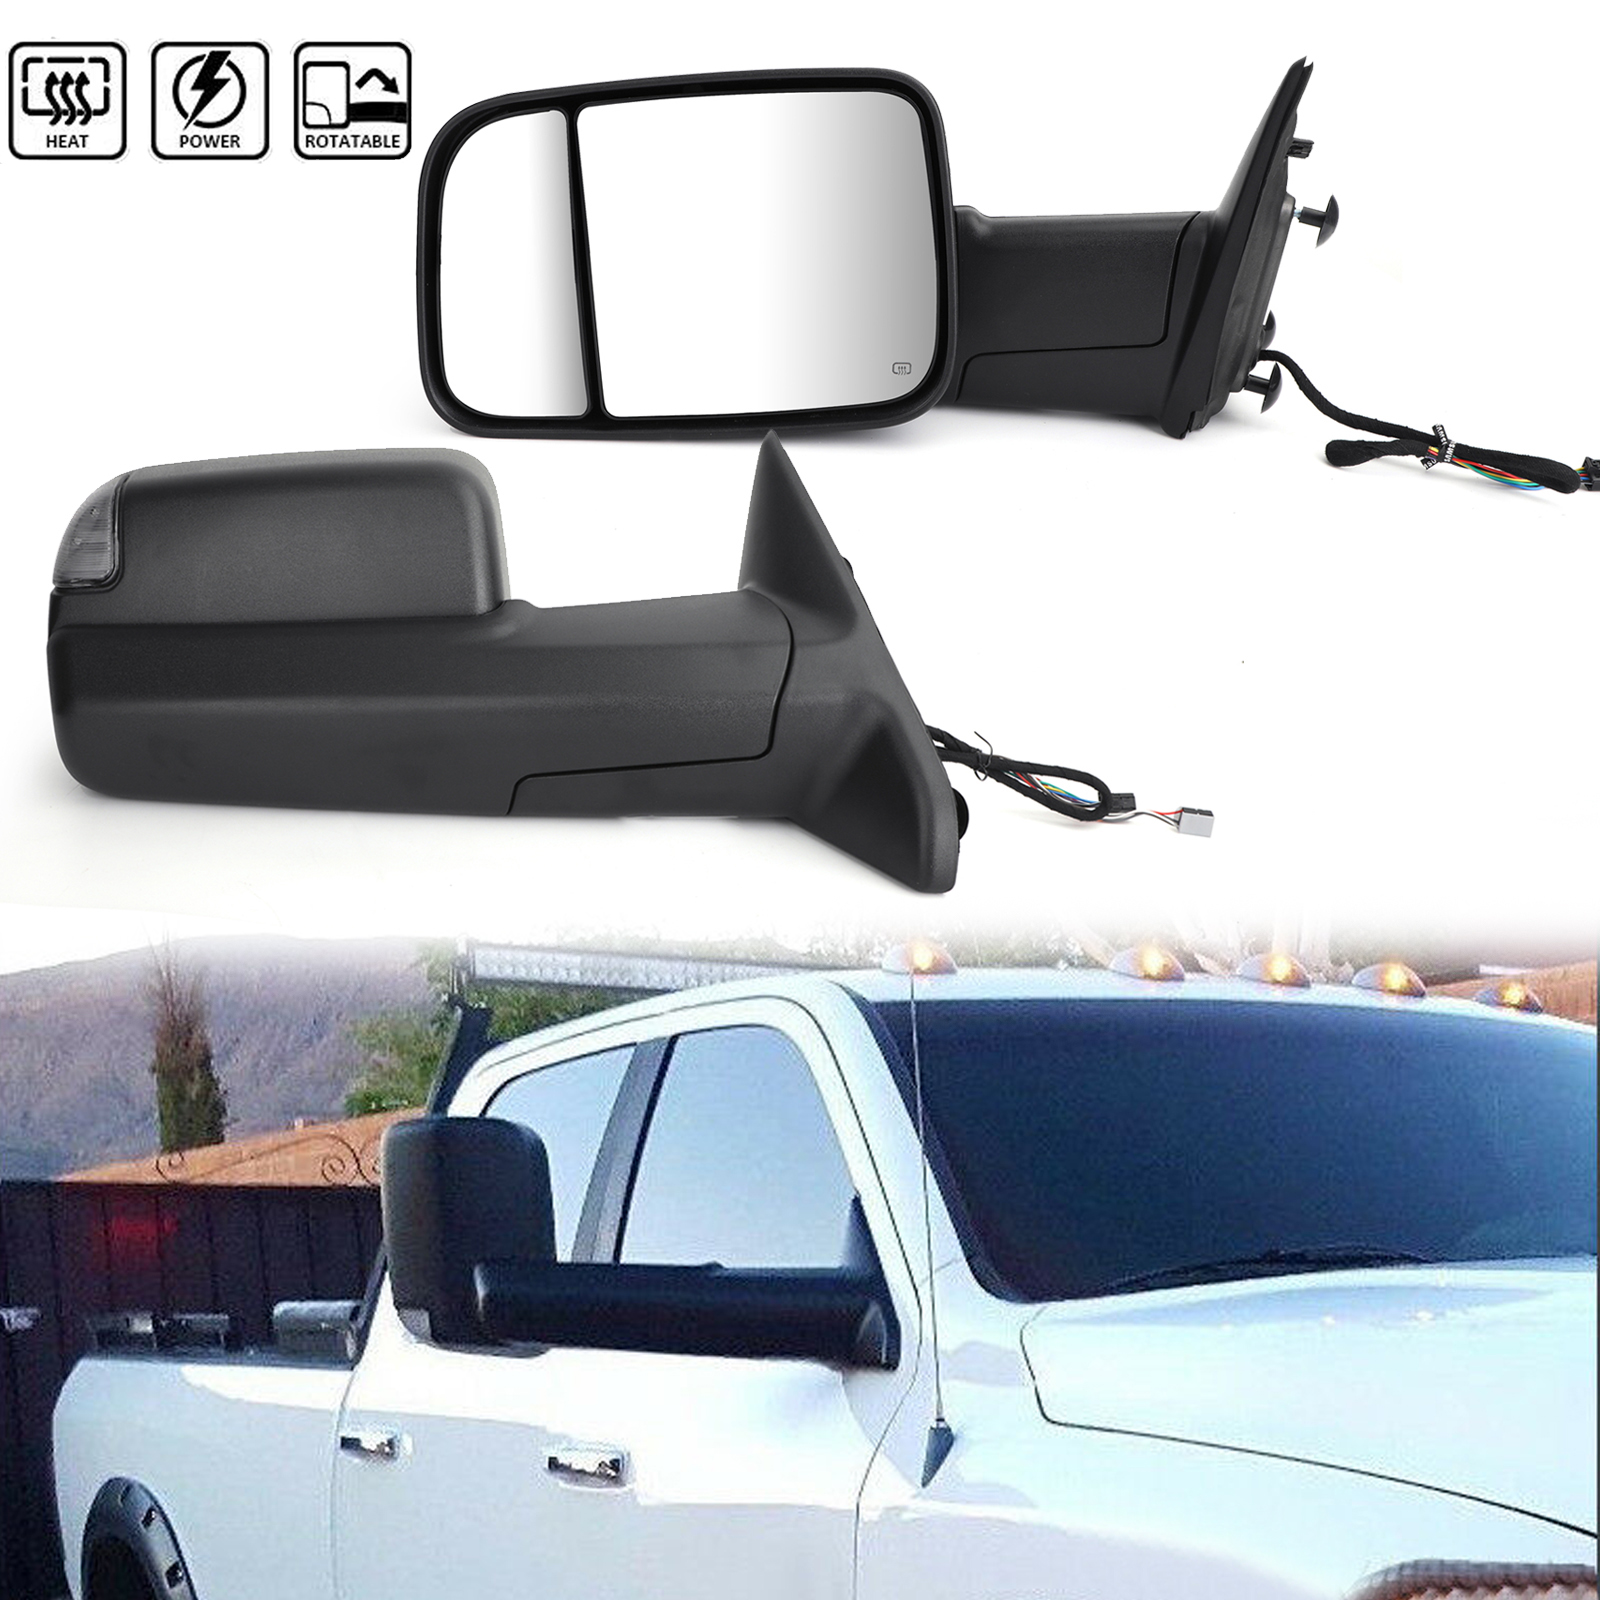 2009-2012 Dodge Ram 1500 Flip Up Towing Trailer Side Mirrors w// Heated